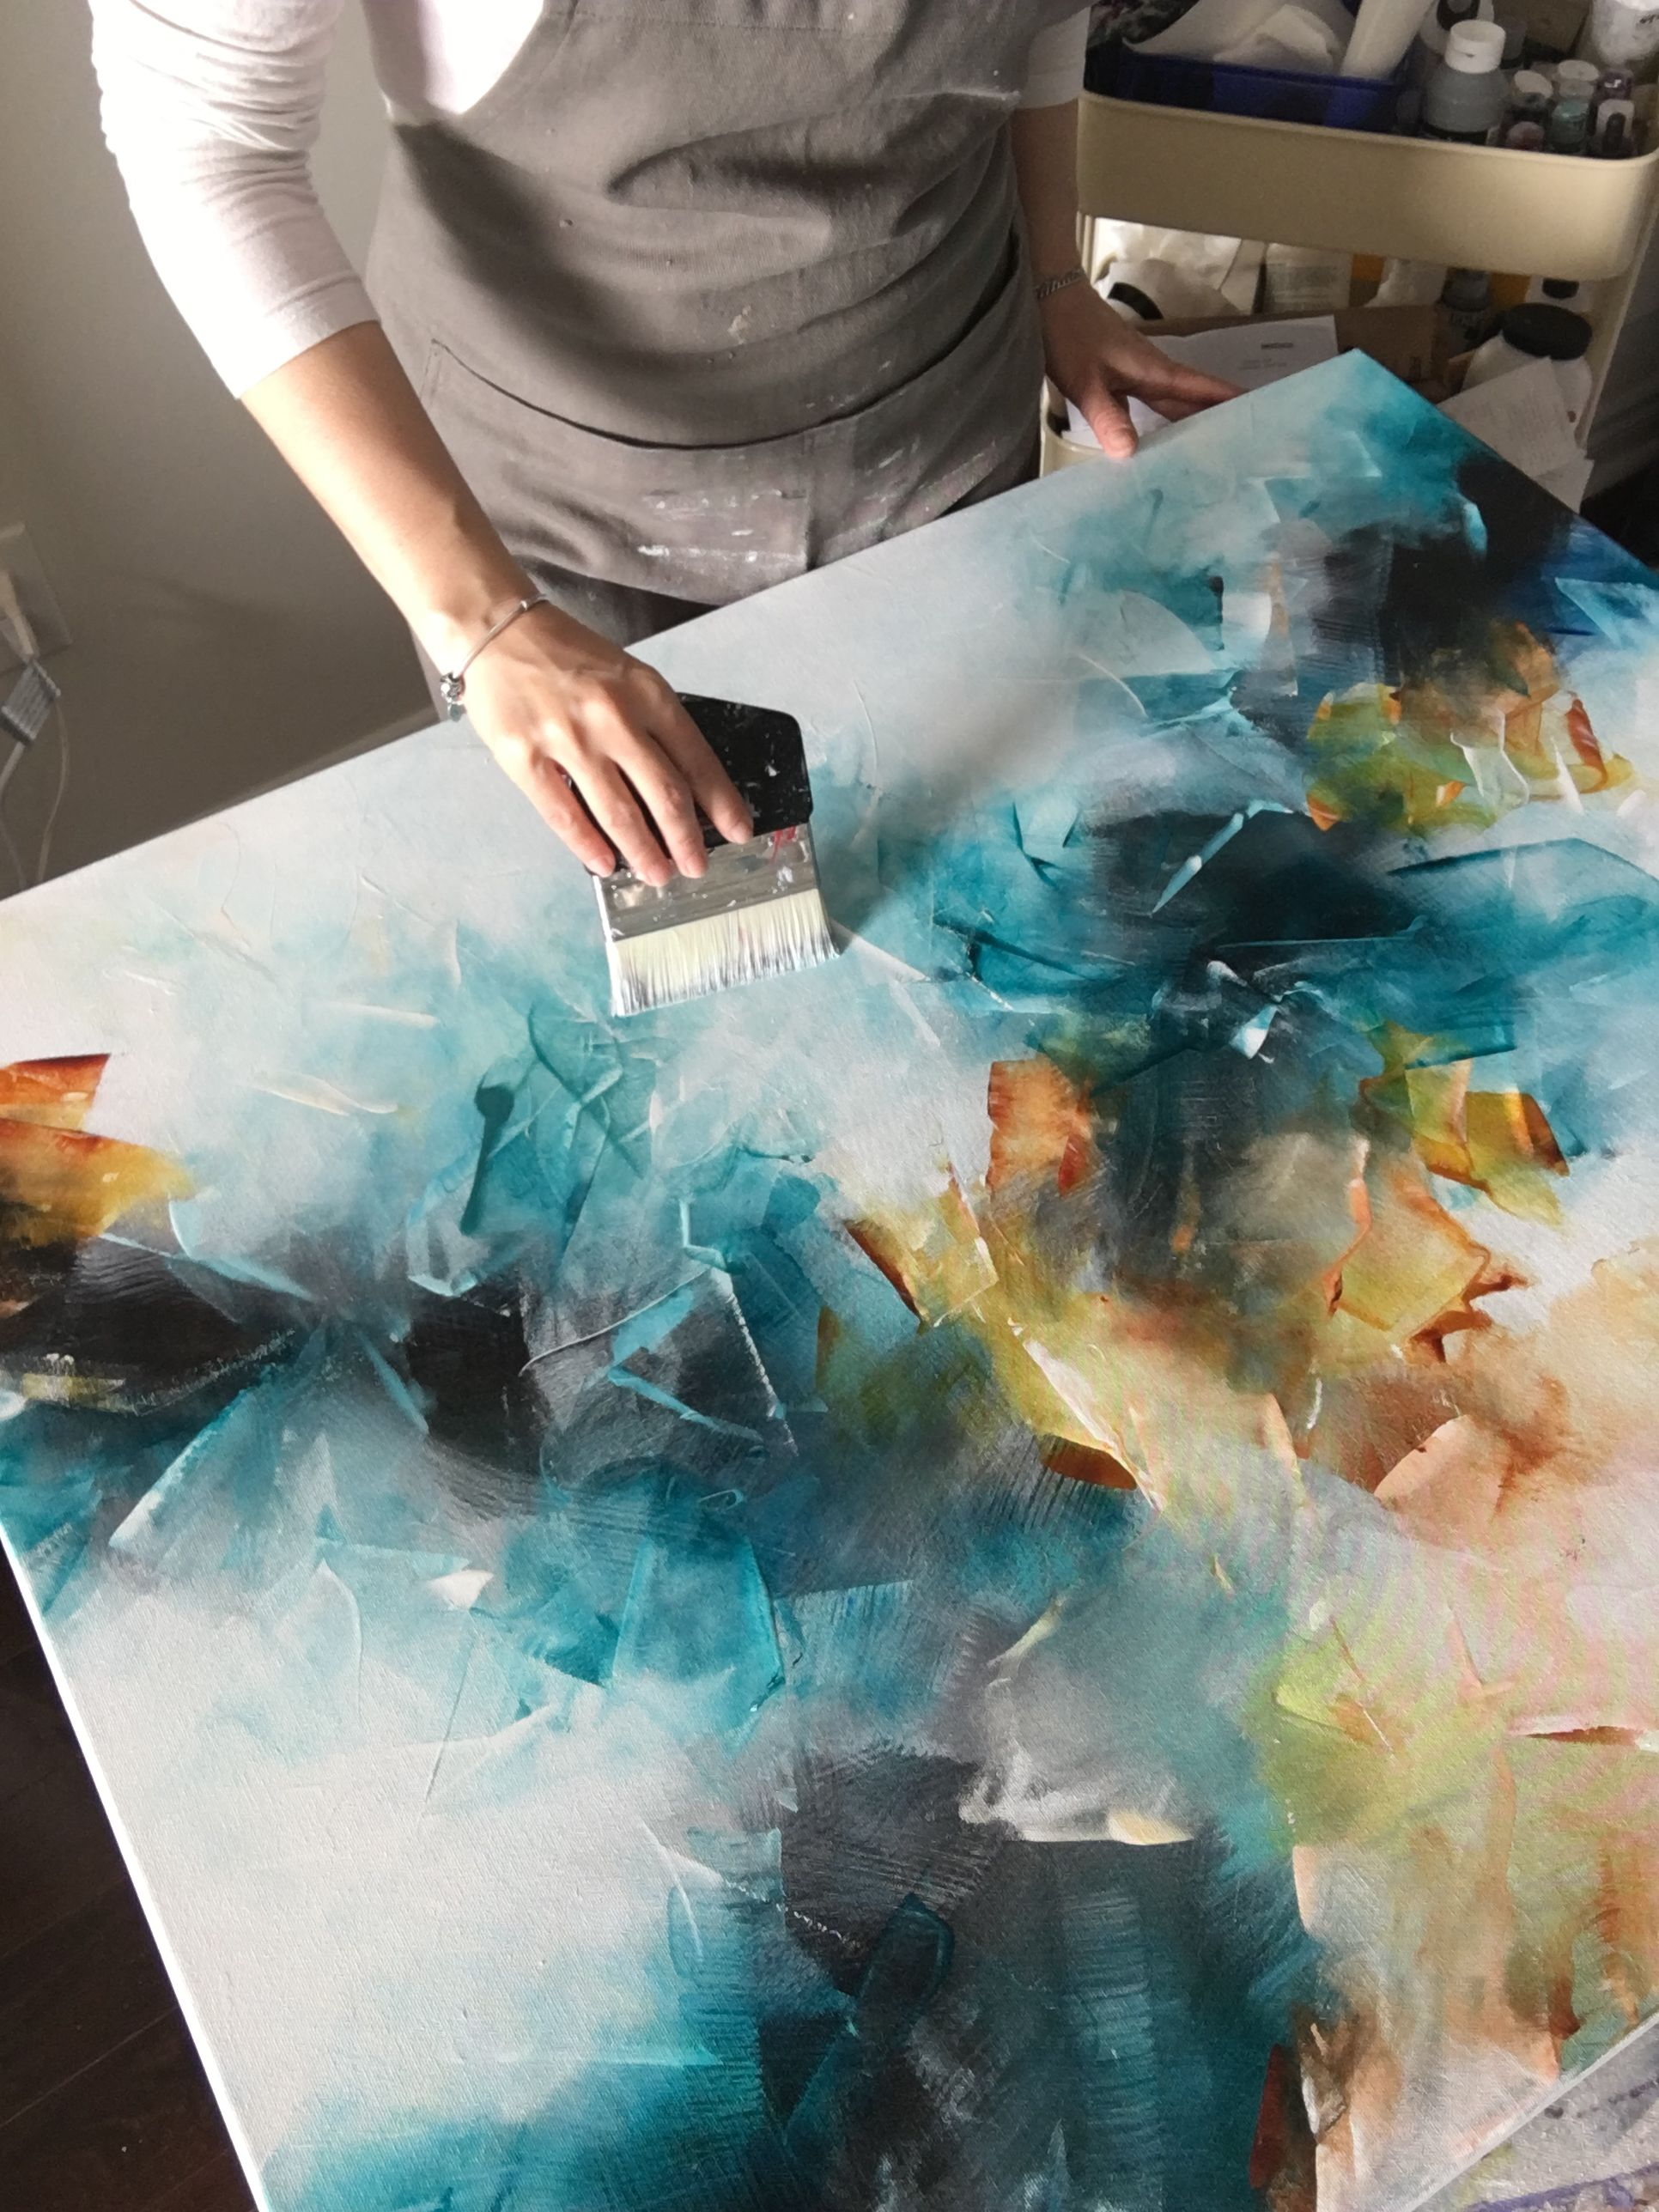 Art Studio Work in progress - an acrylic abstract painting on canvas, using Golden Fluid Acrylics (Toronto, Ontario)  Abstract painting inspiration & ideas.  Image: artwork by Deniz Altug #artanddrawing